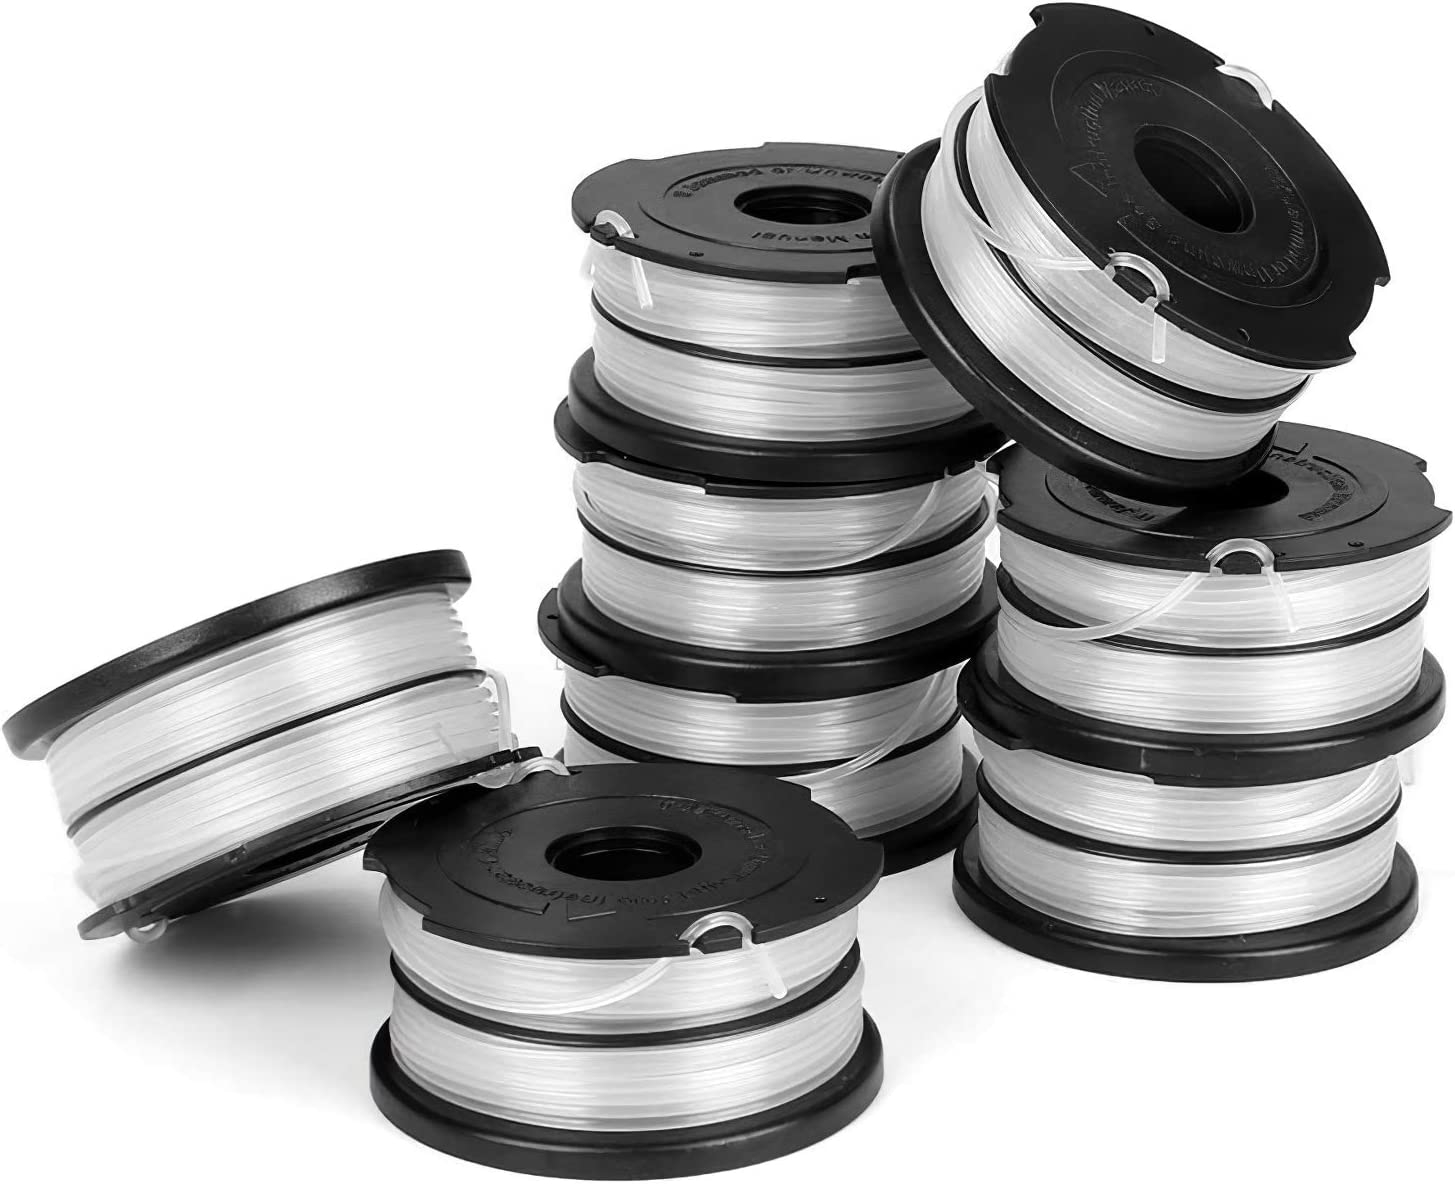 Dual Line Replacement Spool Compatible with DF-065 Black Decker Weed Eater Spool,Compatible with GH710 GH700 GH750 Black and Decker Trimmer,0.065-36ft Trimmer Line Replacement Autofeed Spool 12 Pack